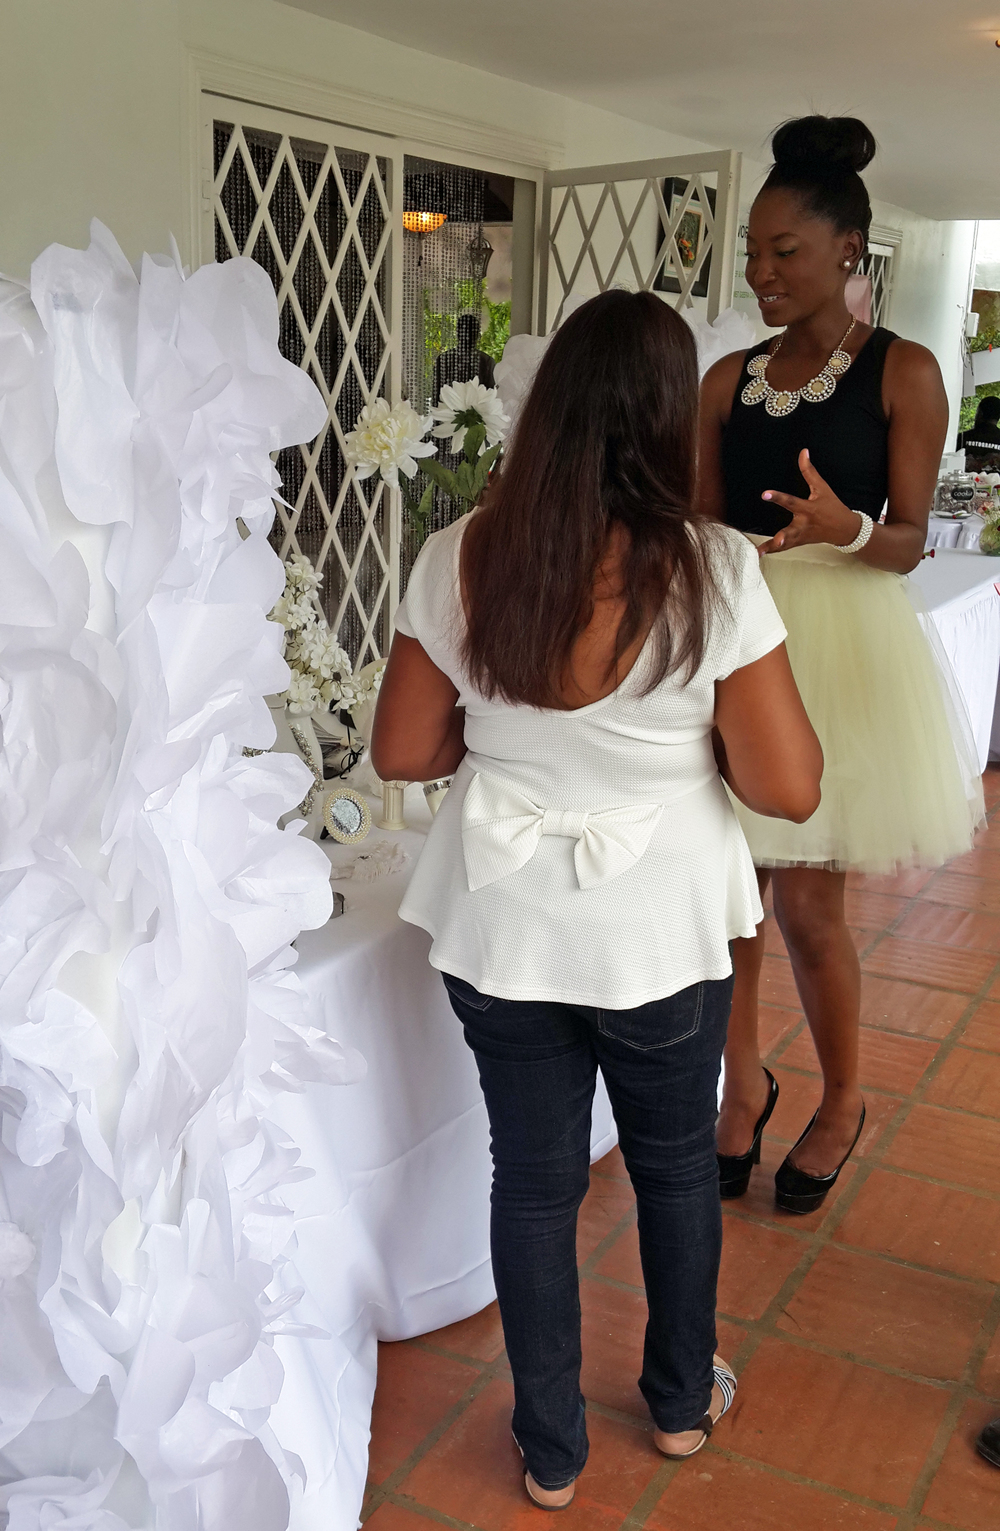 Shaunelle. Table display design by Shaunelle Ramesar. Assistant for the day interacting with patrons.